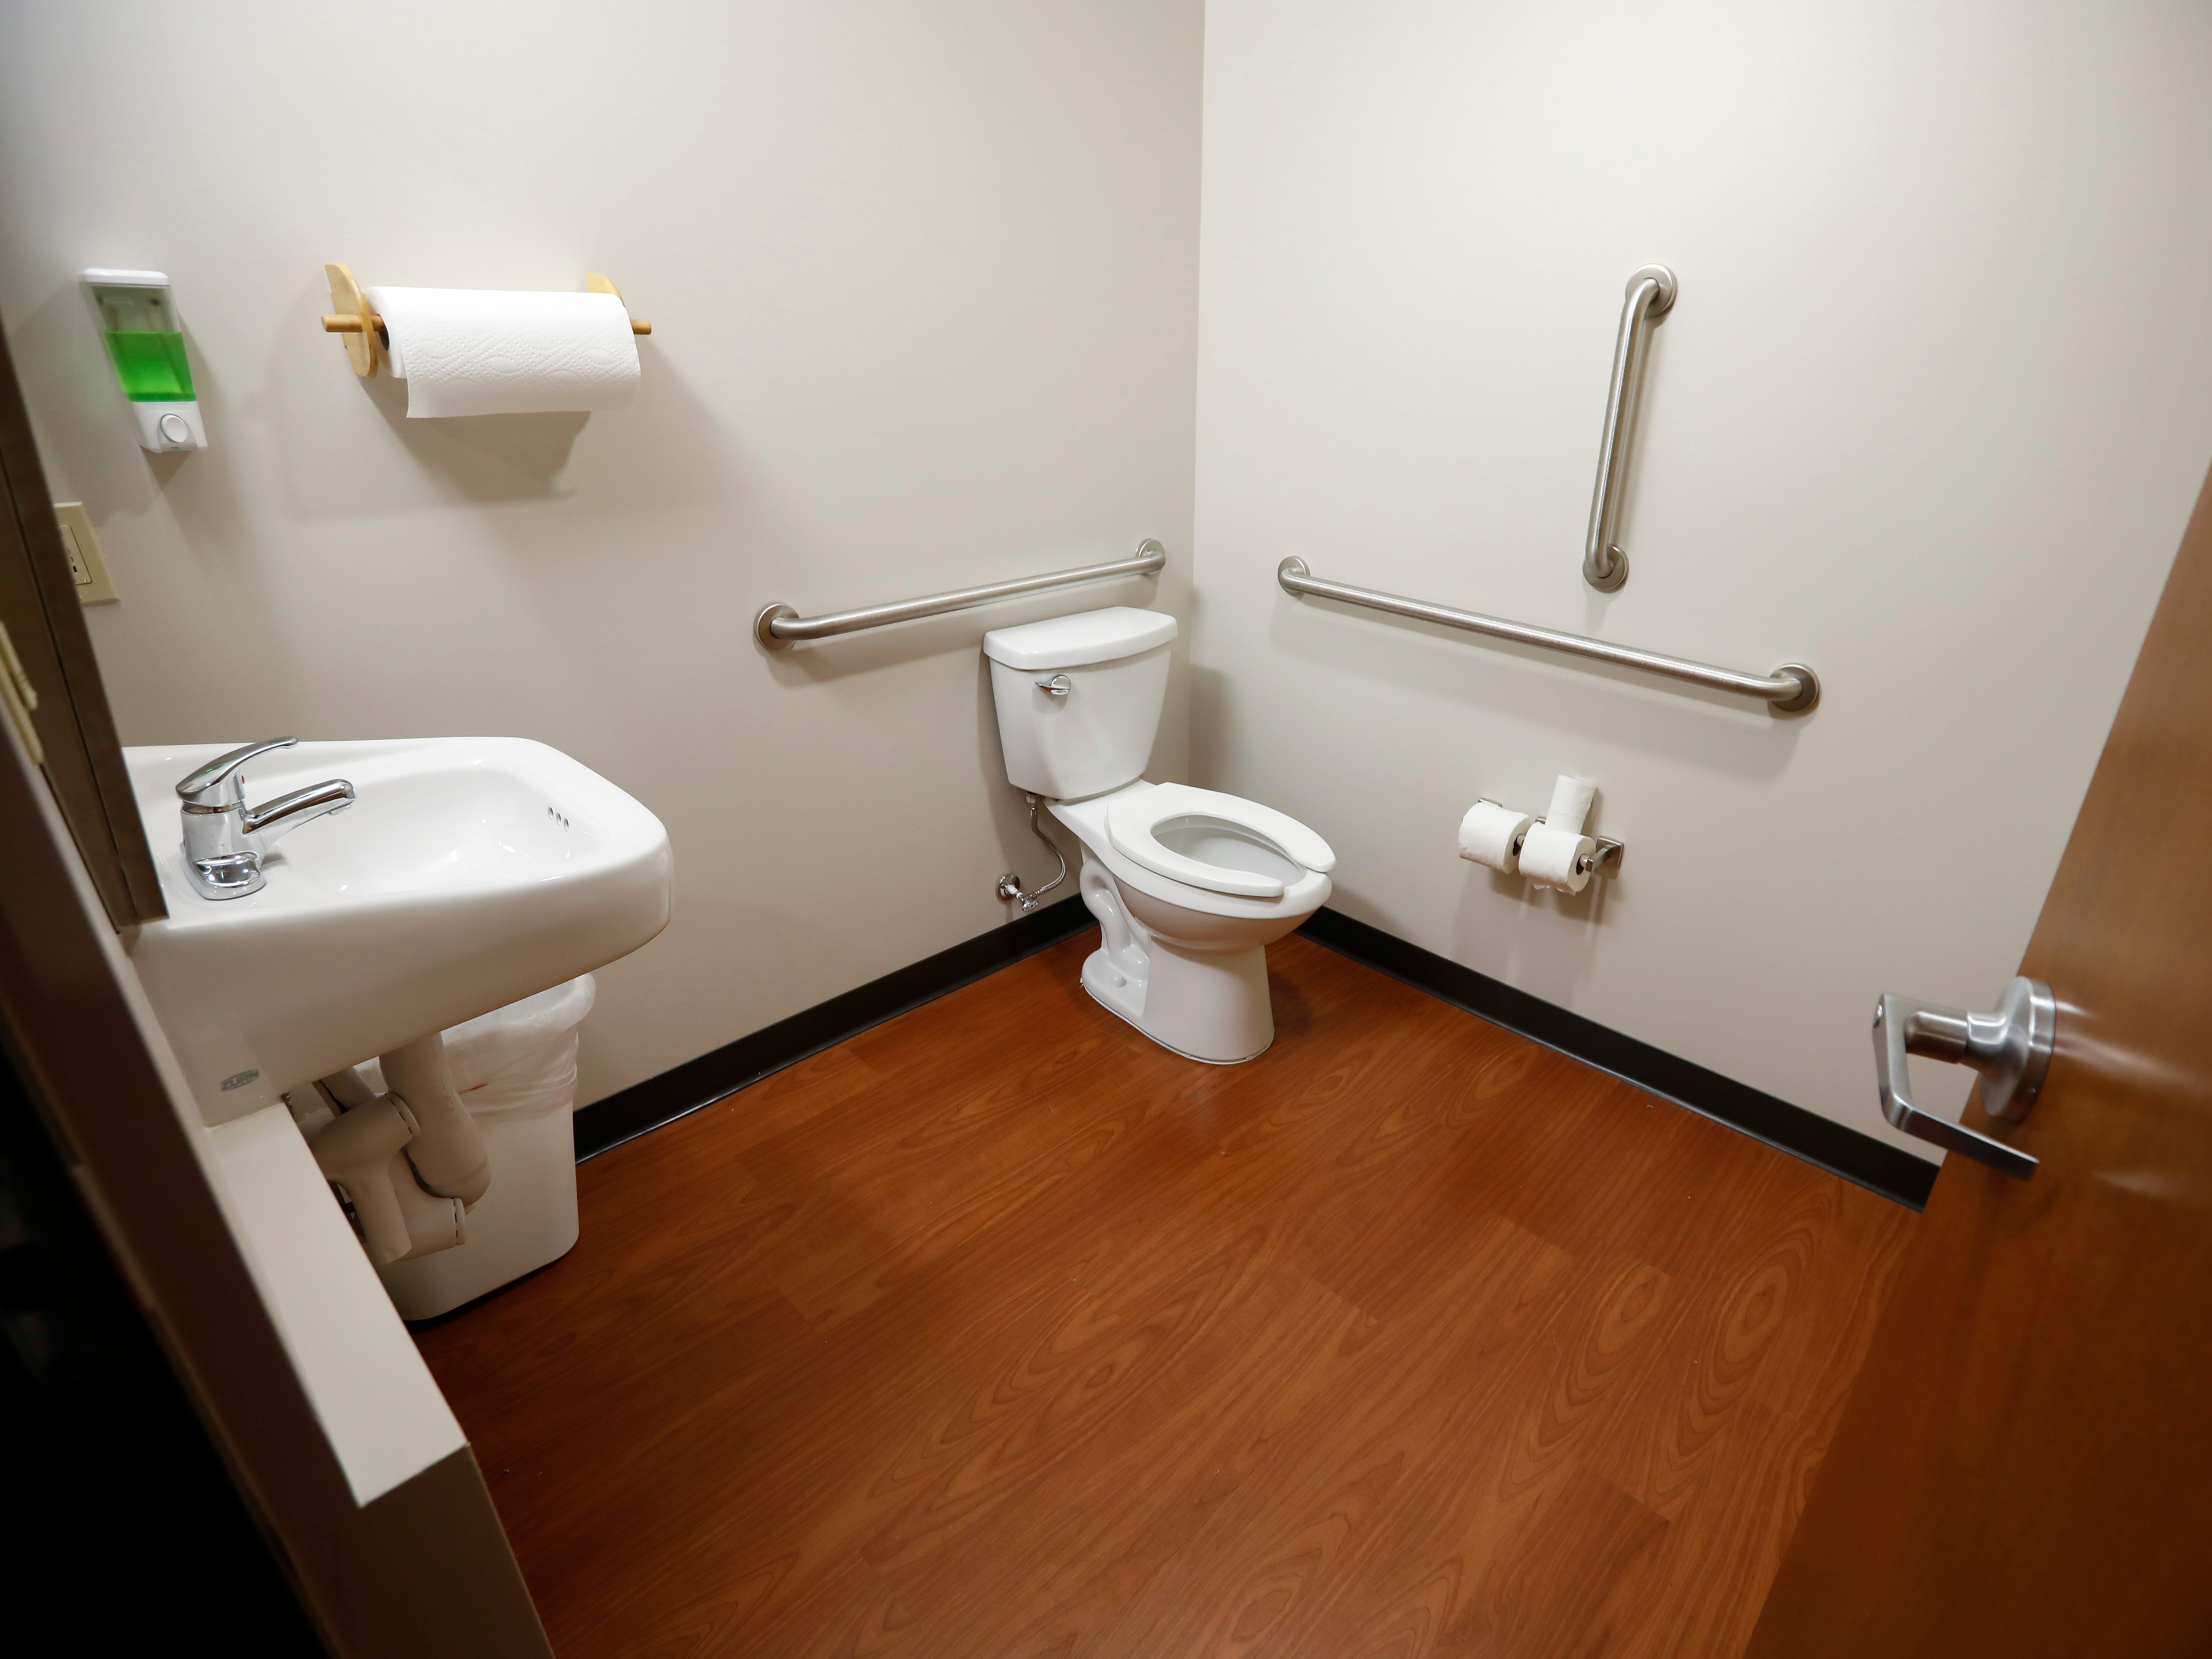 One of the shared restrooms inside of The Kitchen's new Emergency Shelter located at 1855 E. Chestnut Expressway.